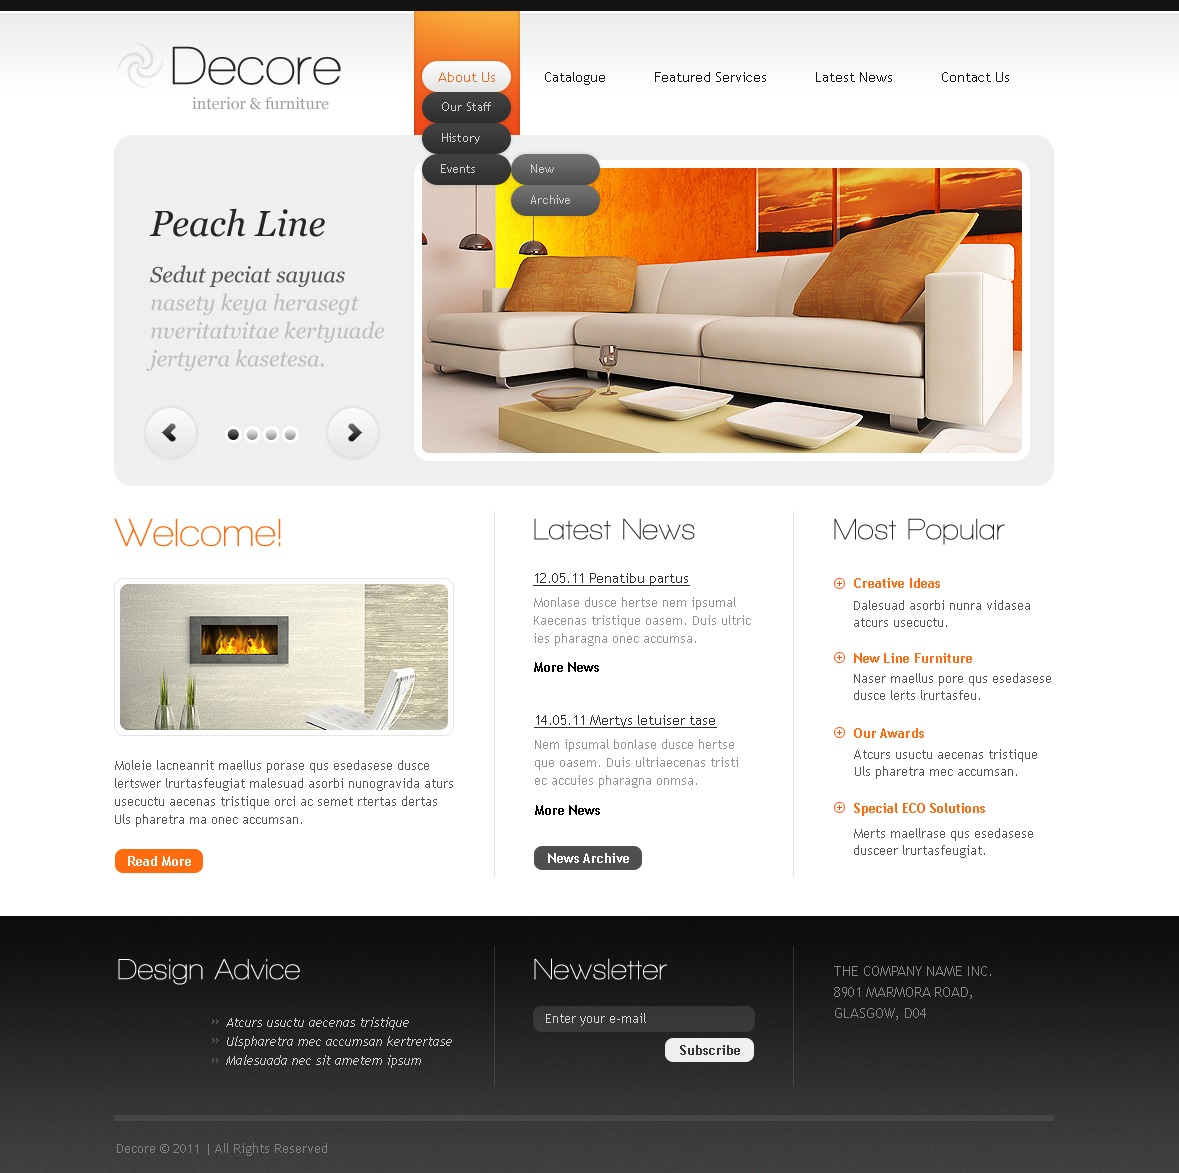 Interior design website template 33492 for Interior design sites